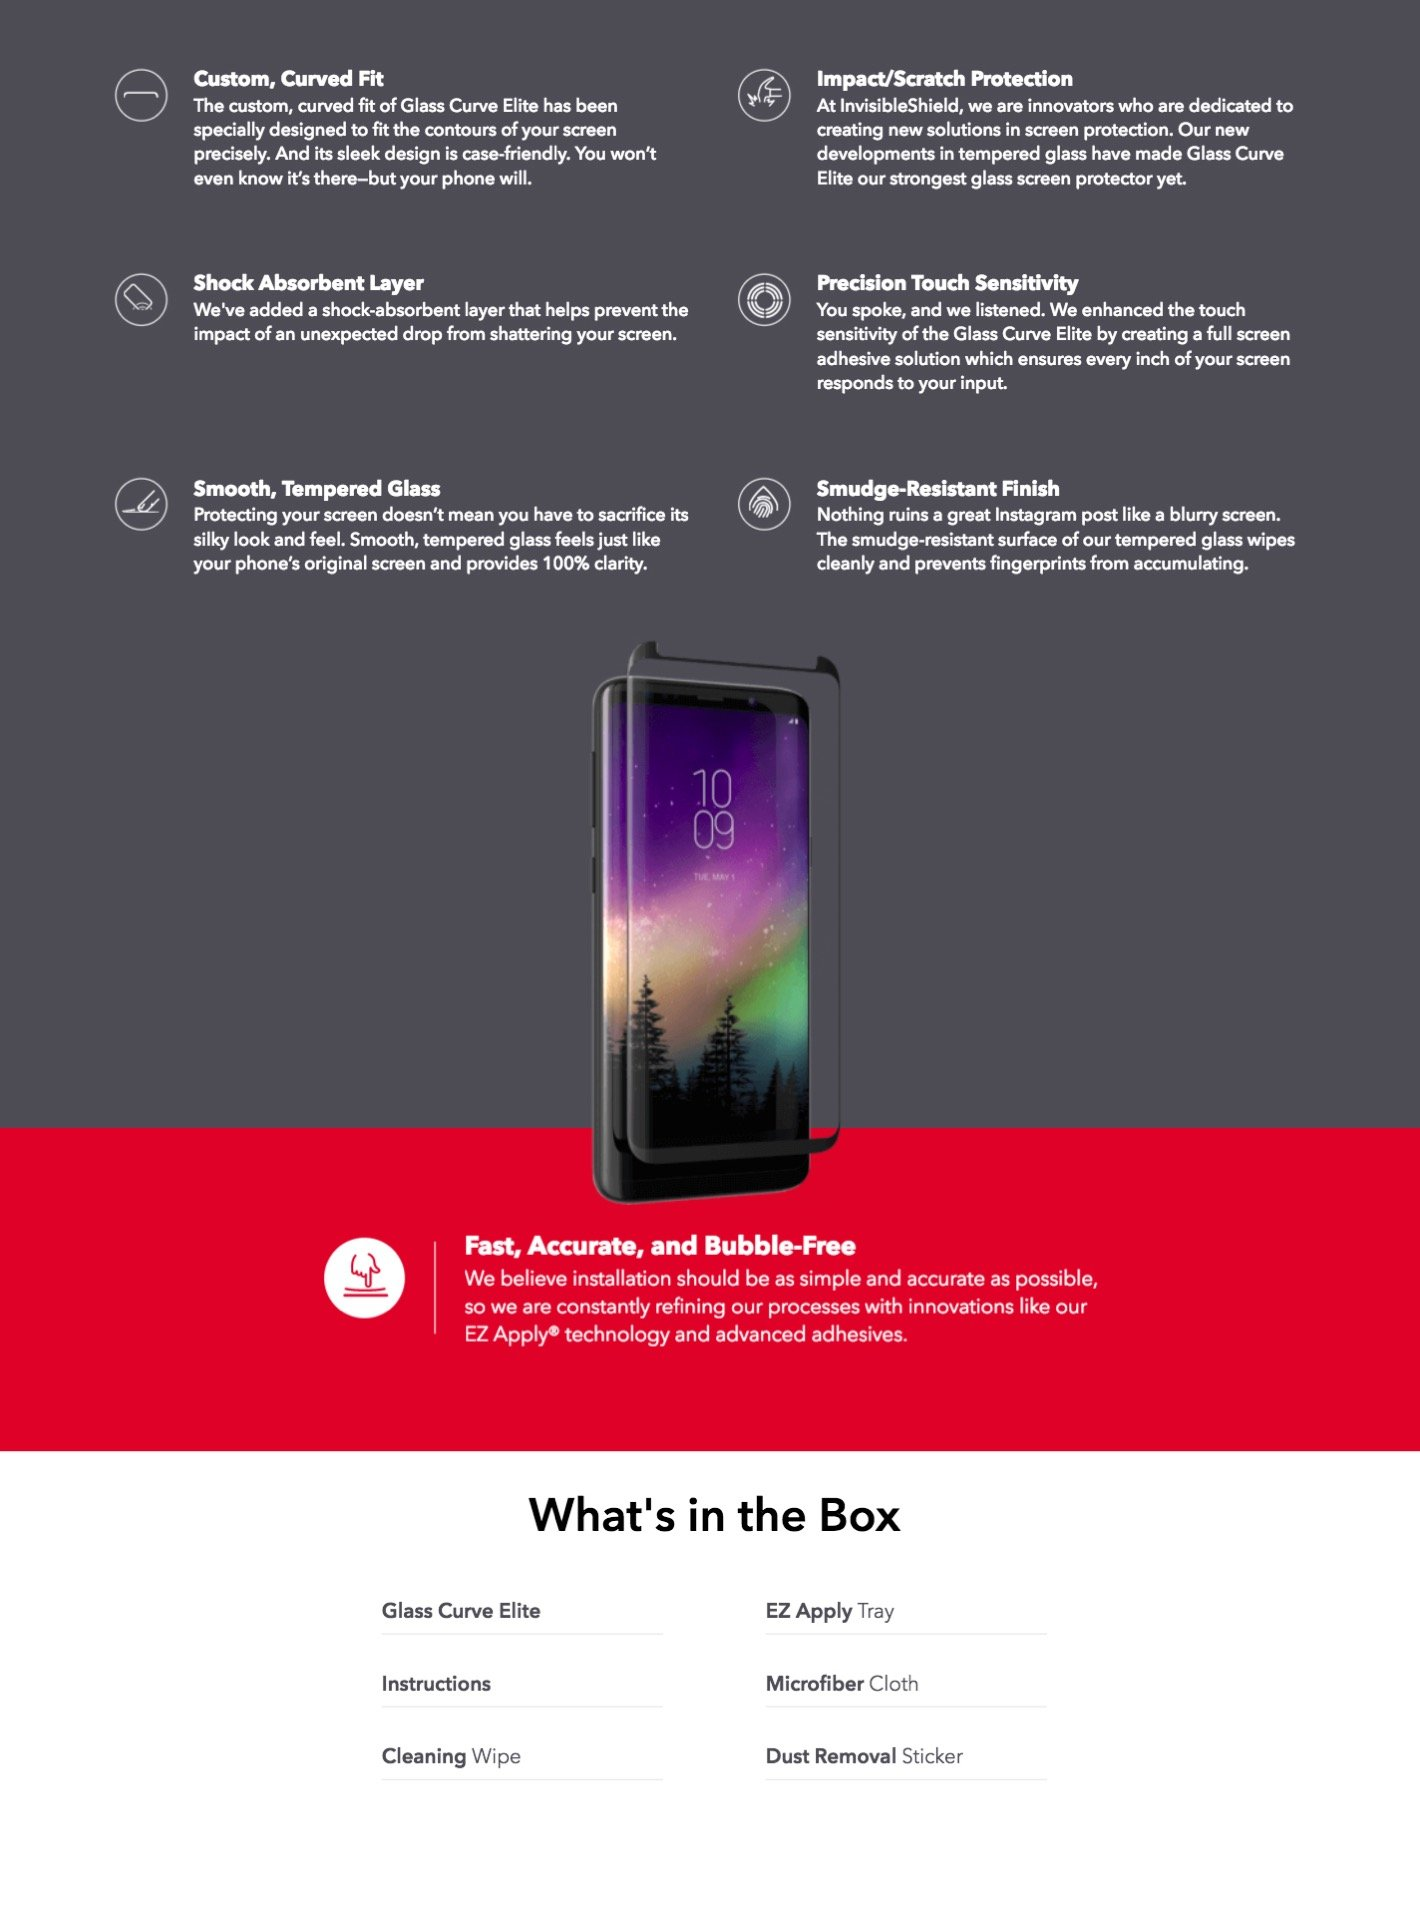 zagg-curve-glass-elite-samsung-s9-plus-forexengineer-store-banner-1-malaysia